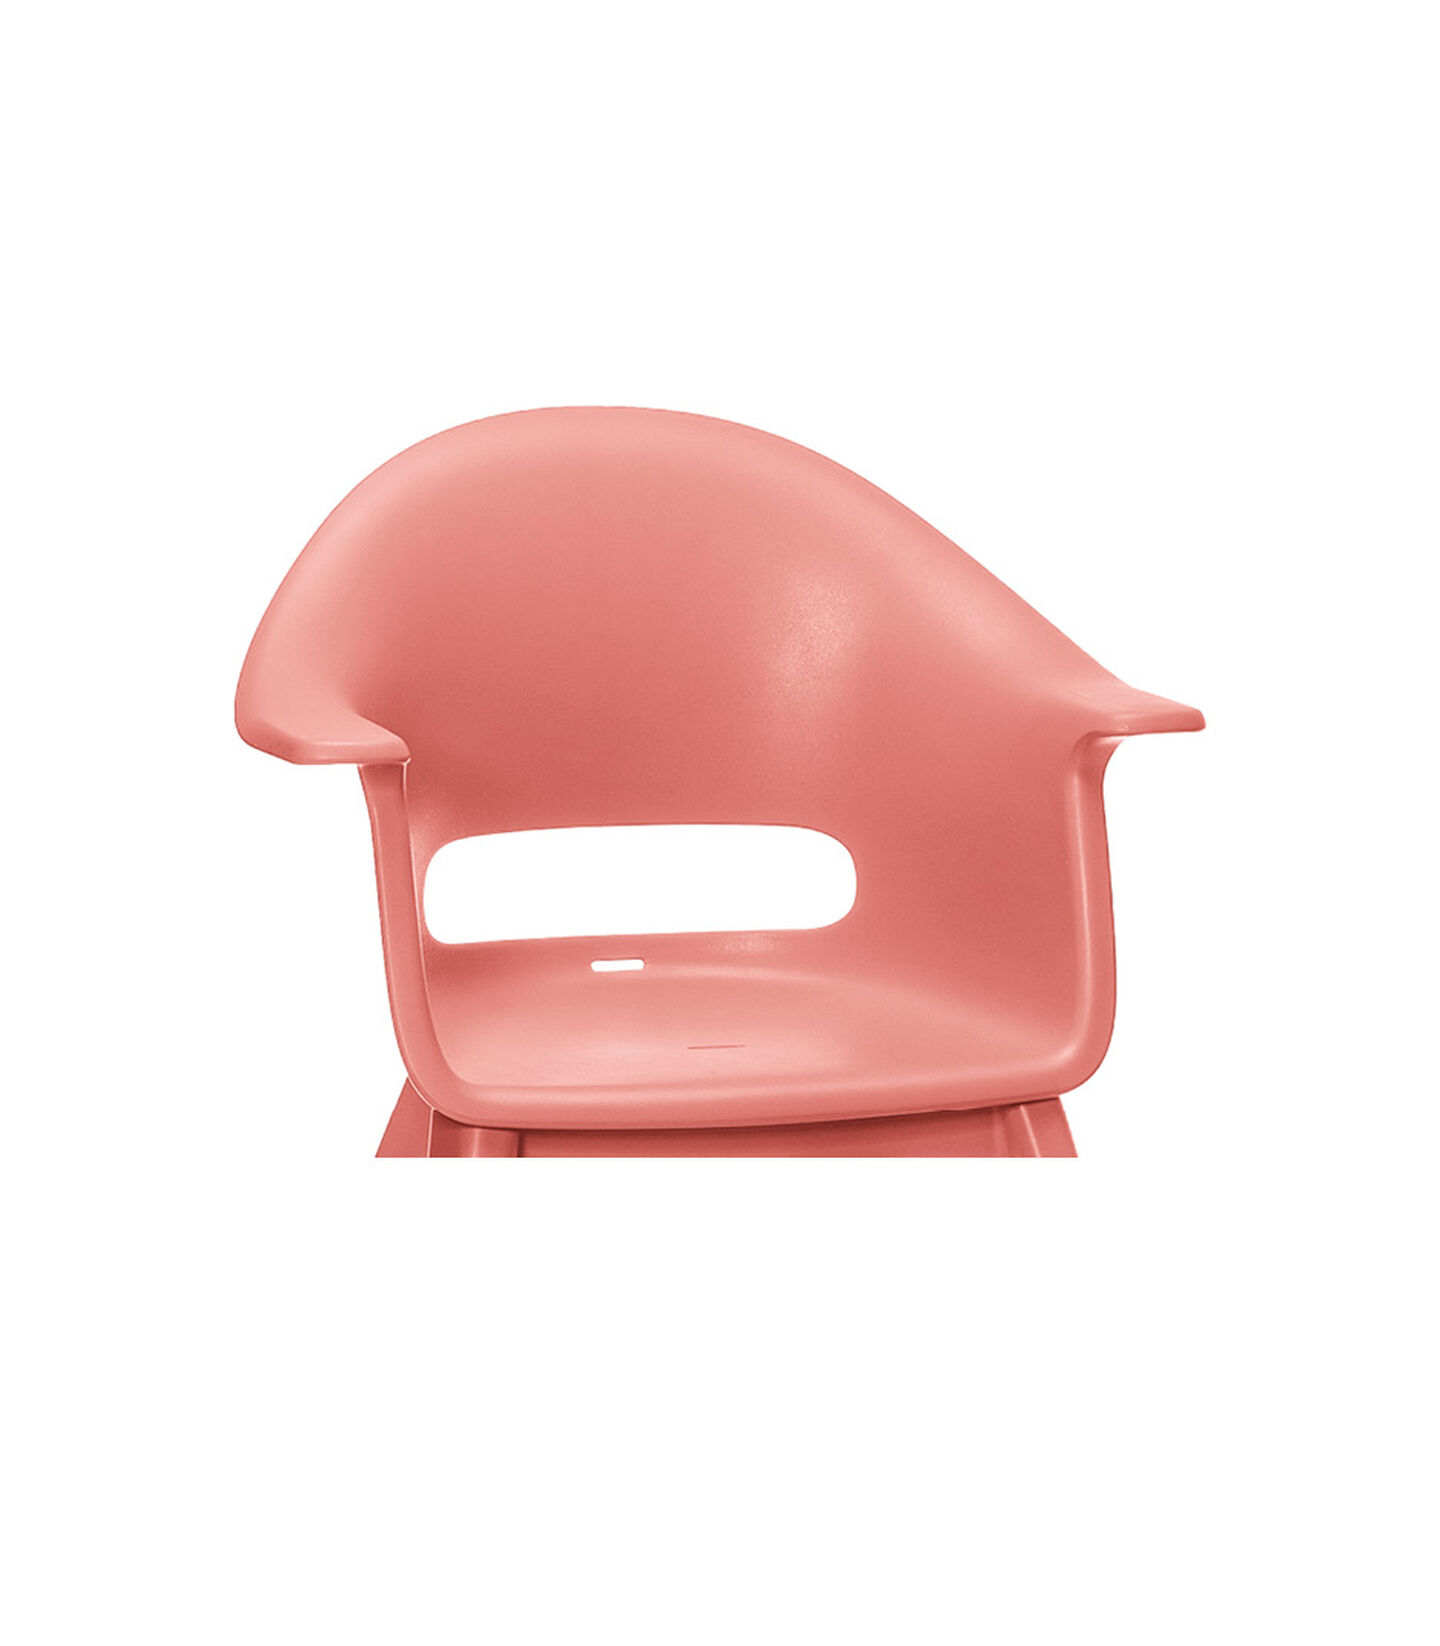 Stokke® Clikk™ sete - Sunny Coral, Sunny Coral, mainview view 1